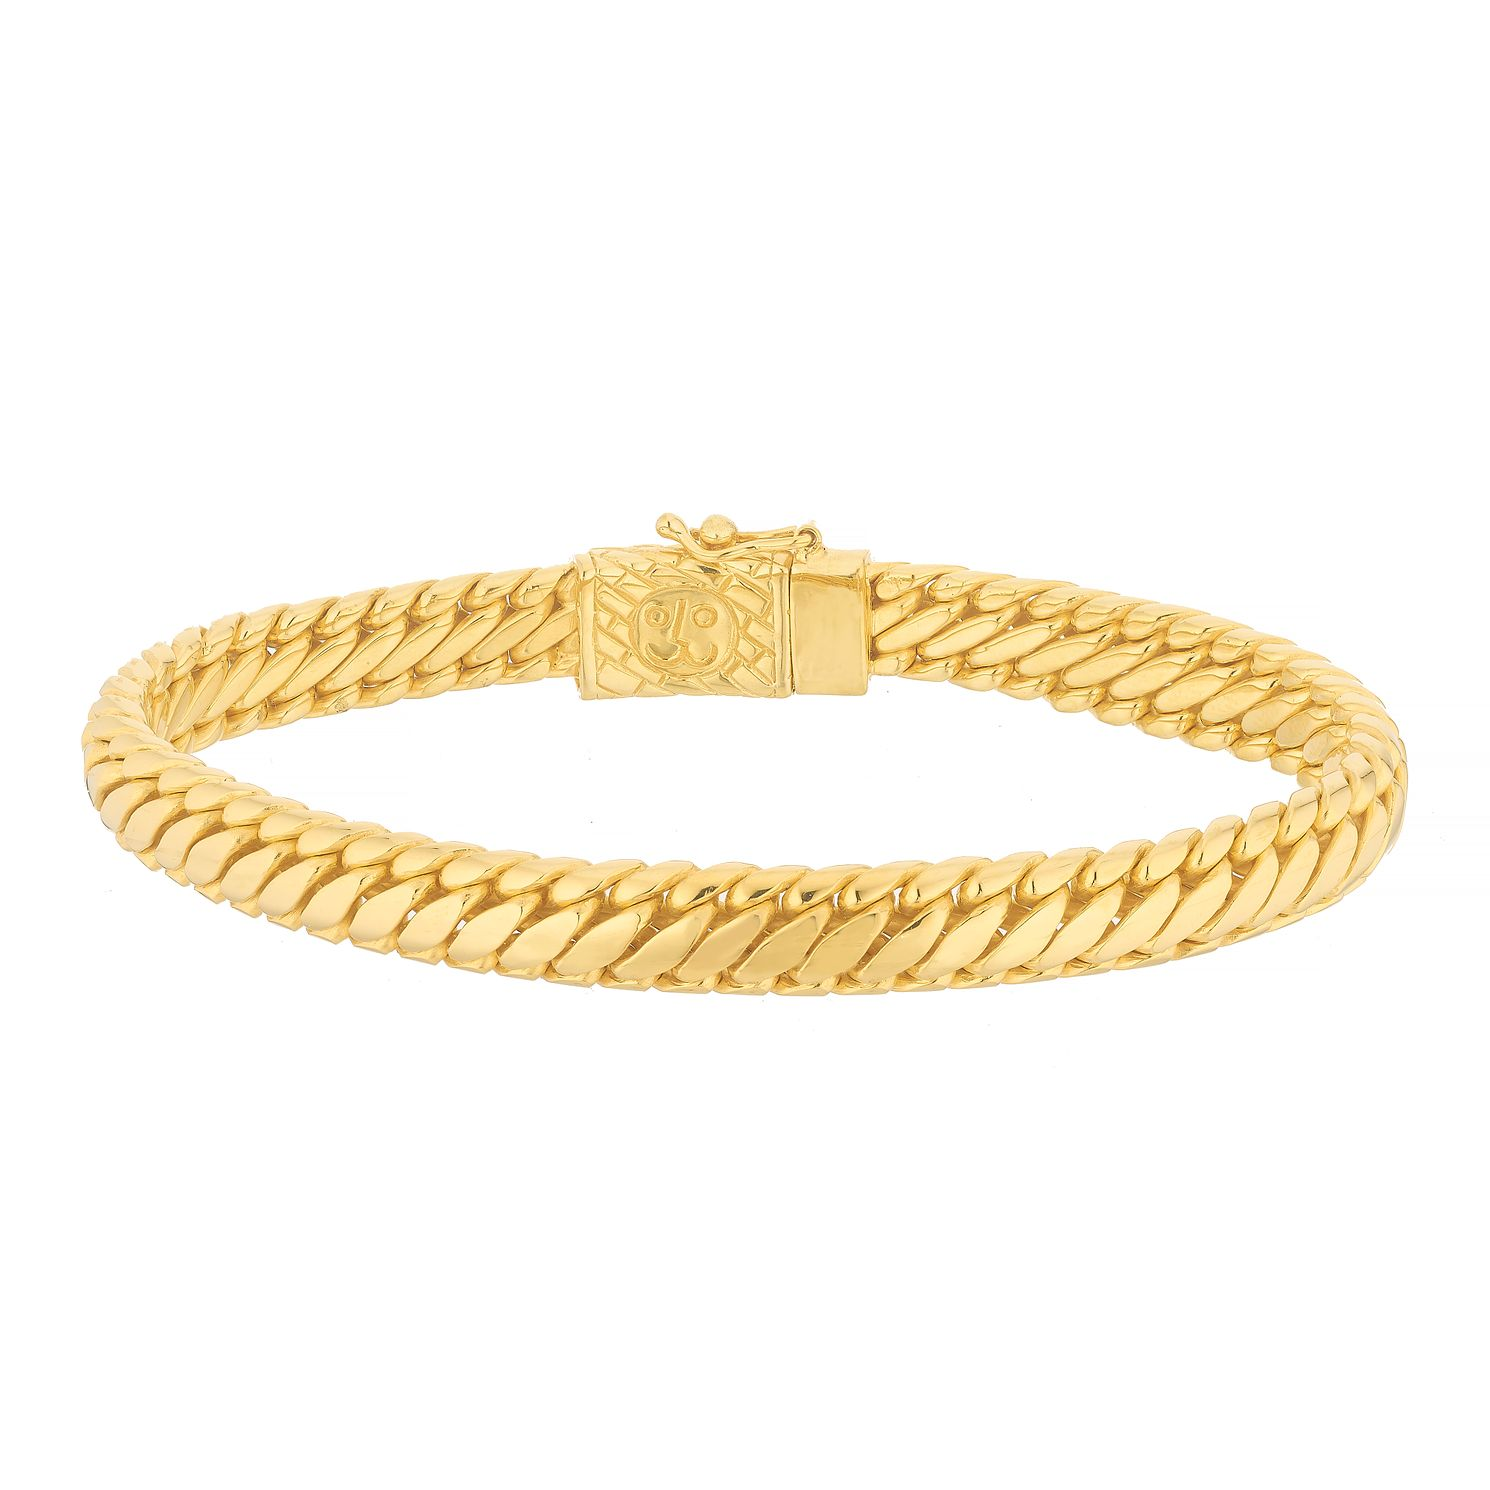 Esquire 14ct Gold Plated Heavy Serpentine Link Bracelet - Product number 4976444